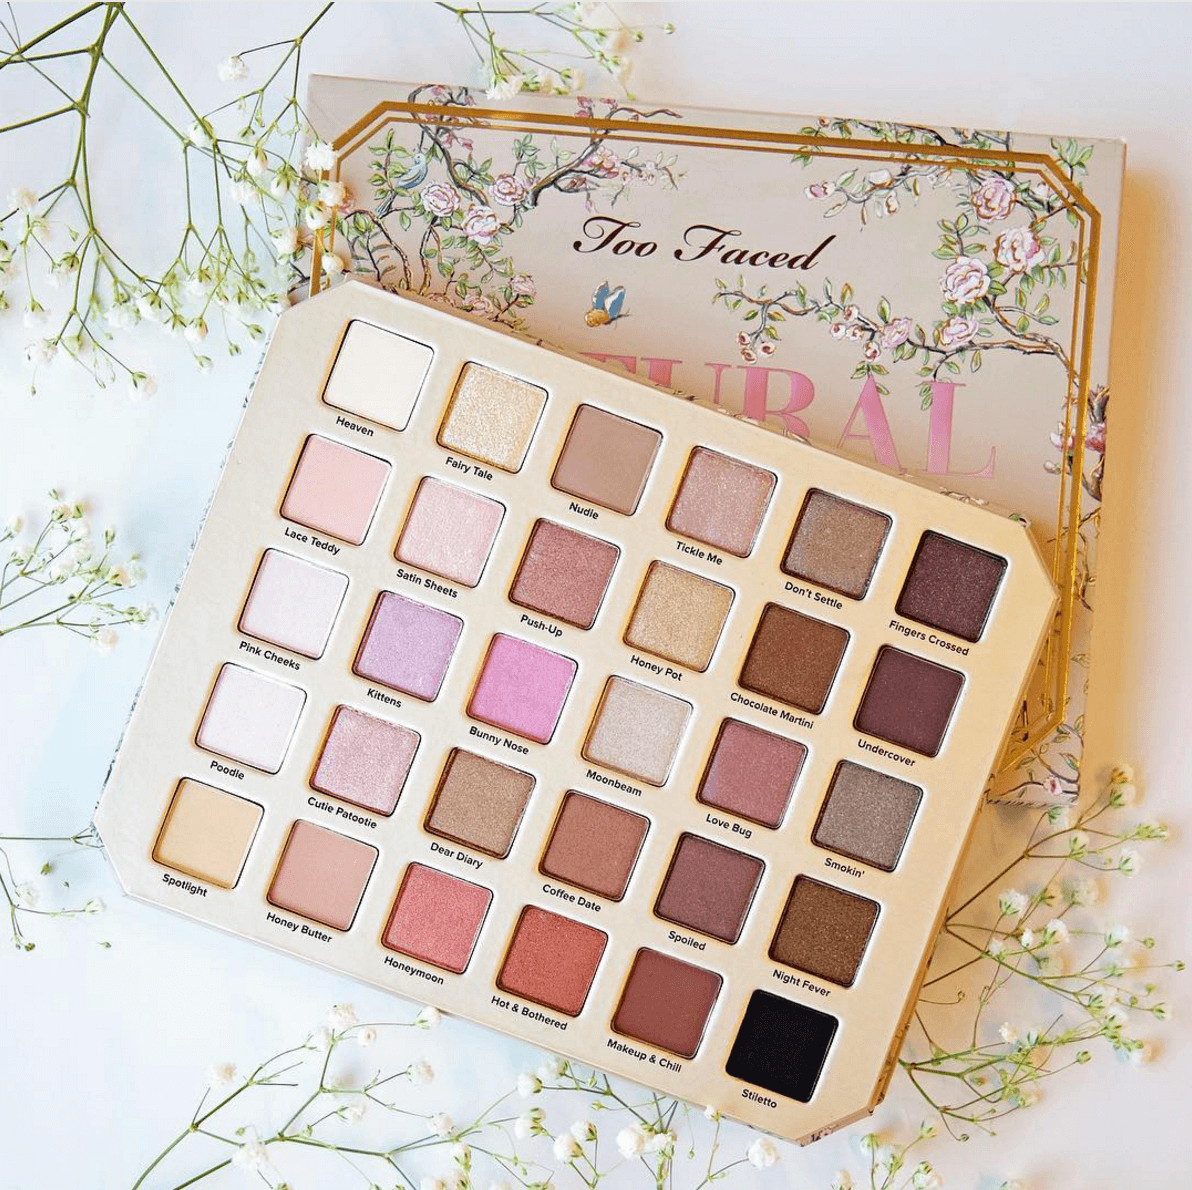 nouveautes-too-faced-palette-natural-love-love-light-highlighters-coeur-sephora-date-sortie-france-makeupbyazadig-paris-champs-elysees-swatch-avis-prix-revue-jerrod